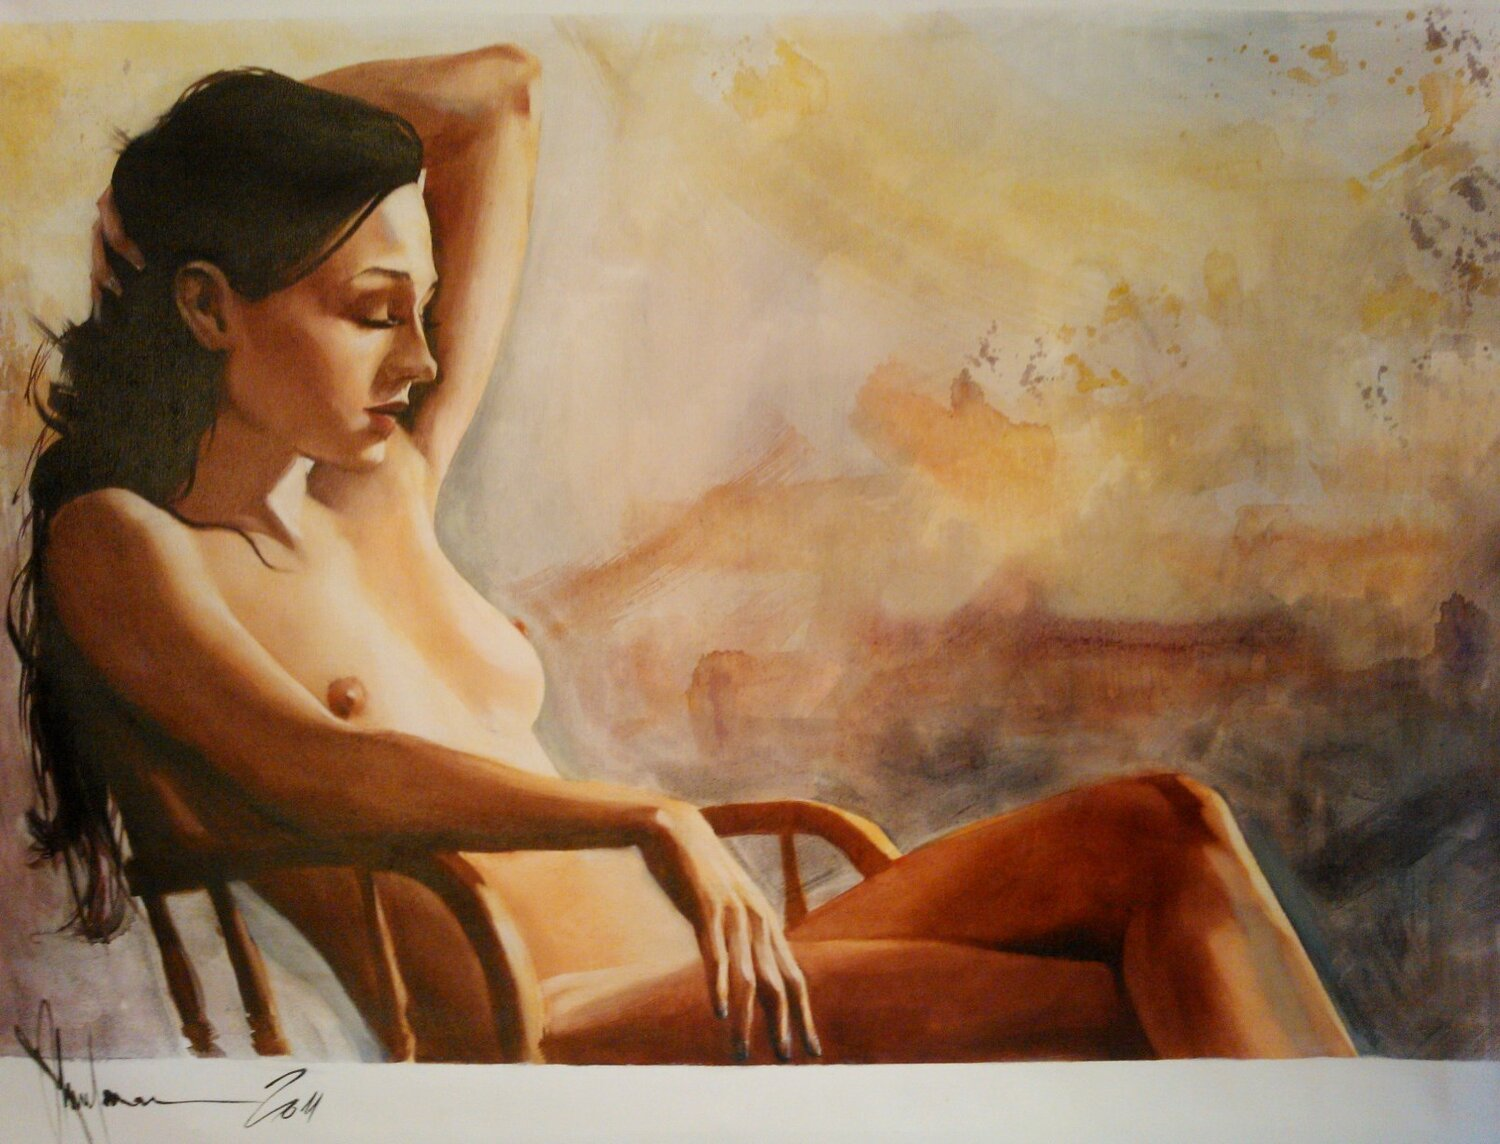 Oil Painting Evelin (2011) 35in x 42.5in / 89x108 cm. Canterbury Auction Galleries, United Kingdom